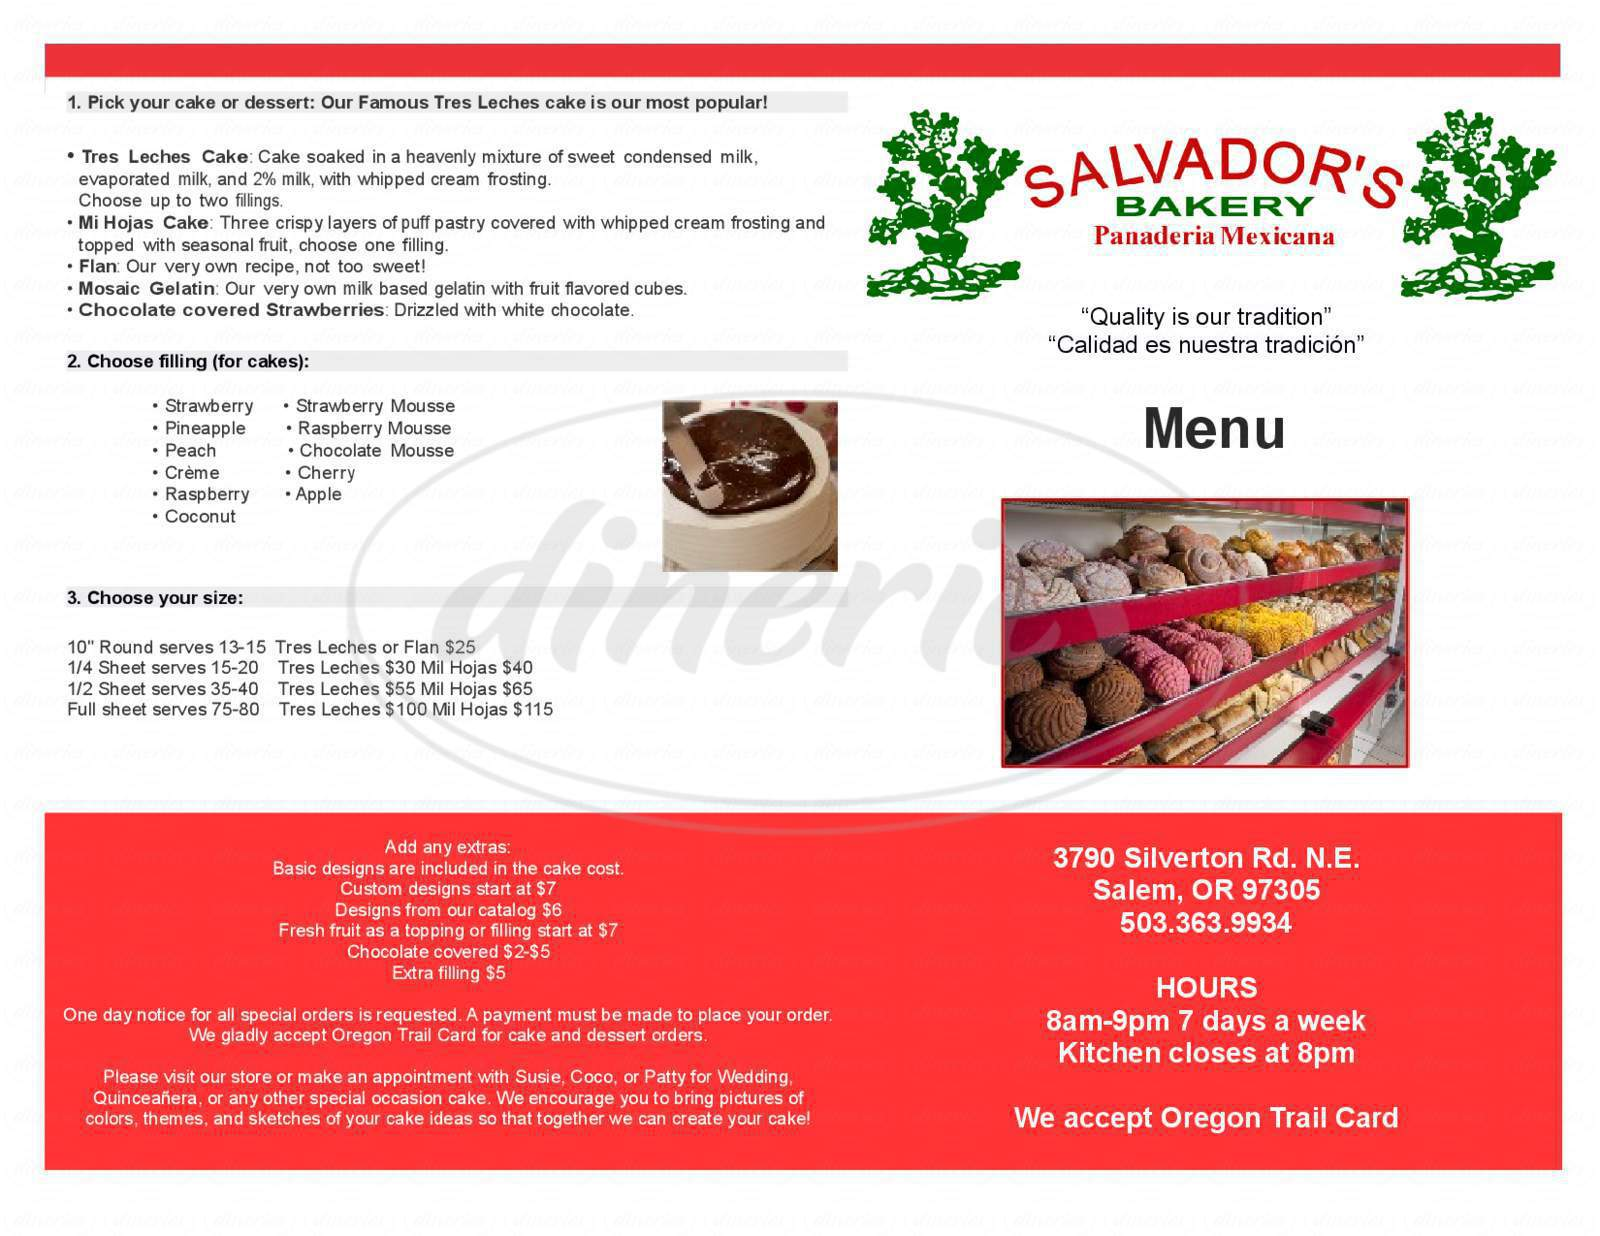 menu for Salvador's Bakery